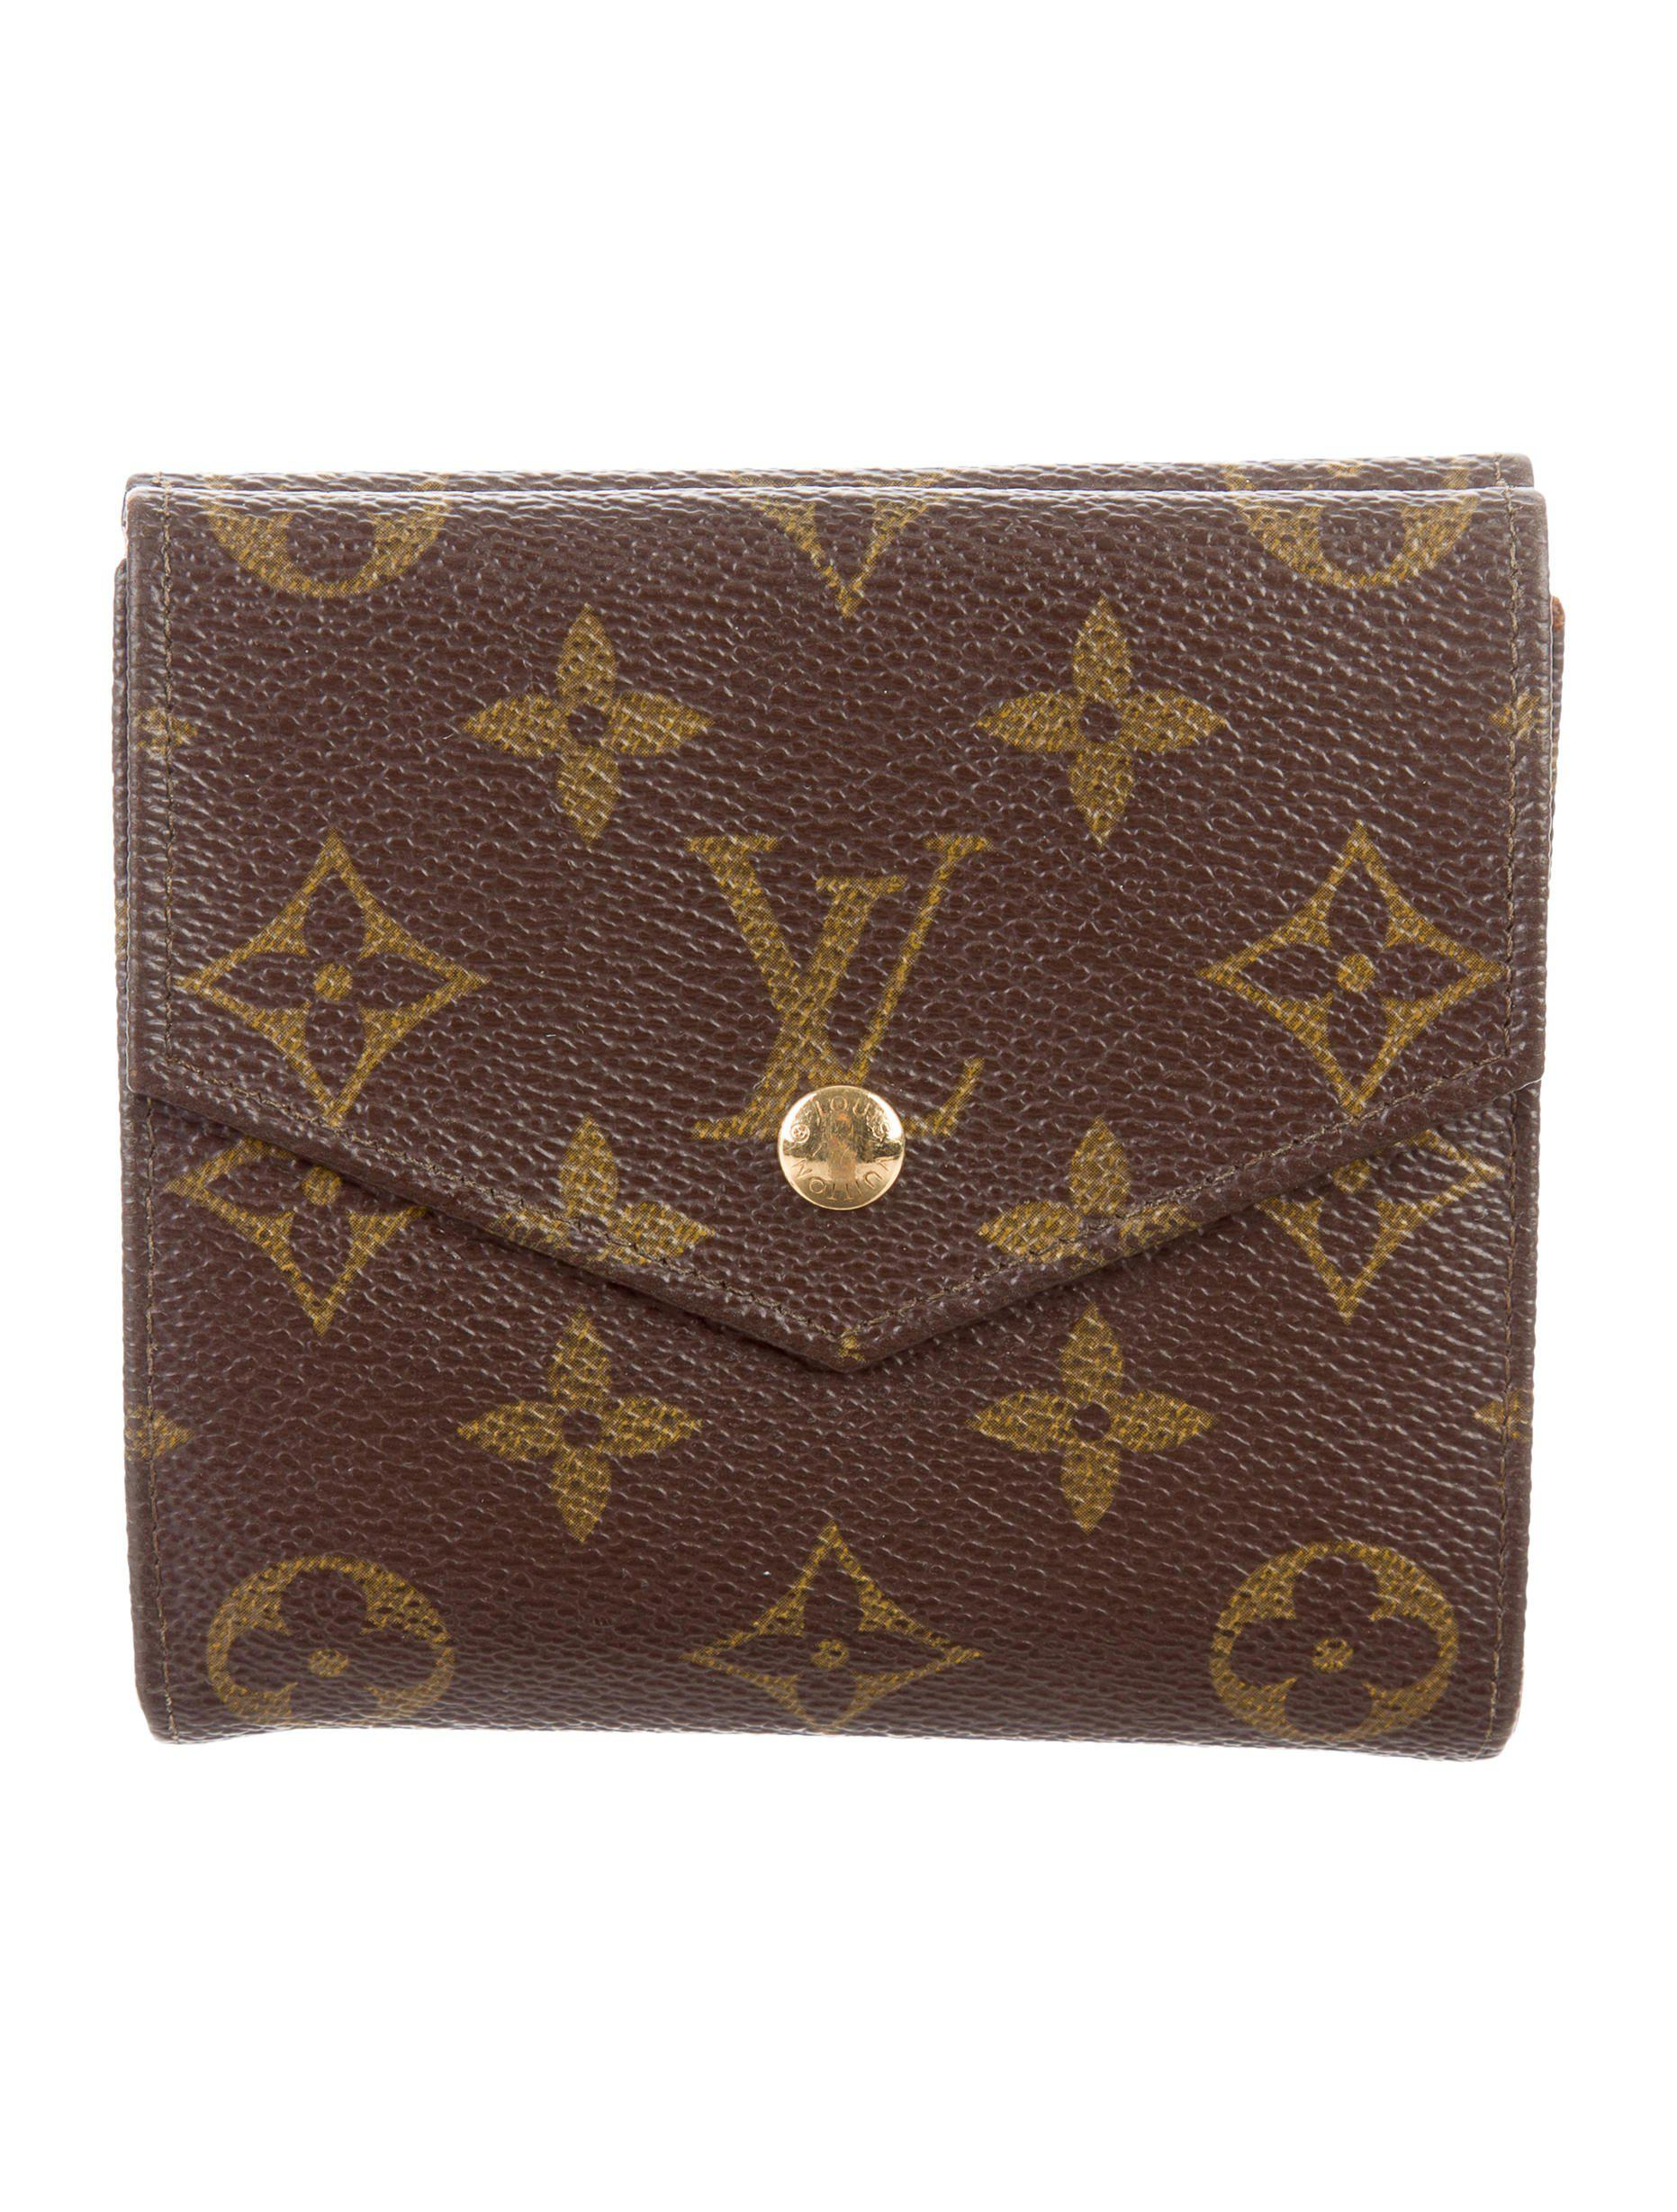 9936a14d56a7 Louis Vuitton. Women s Natural Monogram Elise Wallet Brown